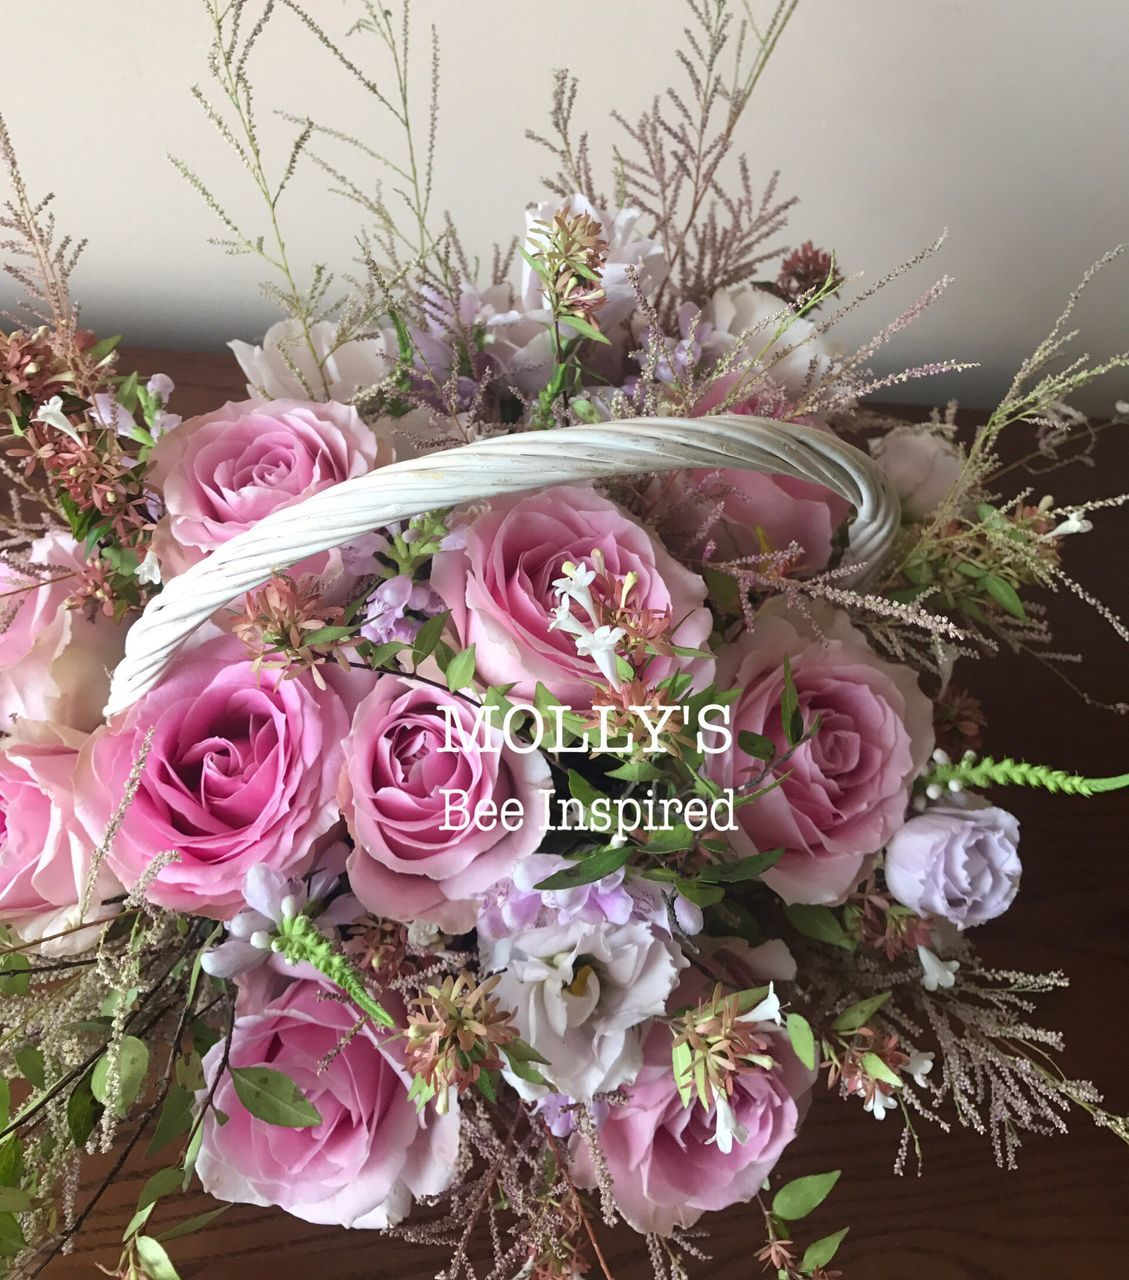 flower, rose - flower, bouquet, no people, beauty in nature, fragility, pink color, nature, freshness, wedding, celebration, close-up, indoors, flower head, day, florist